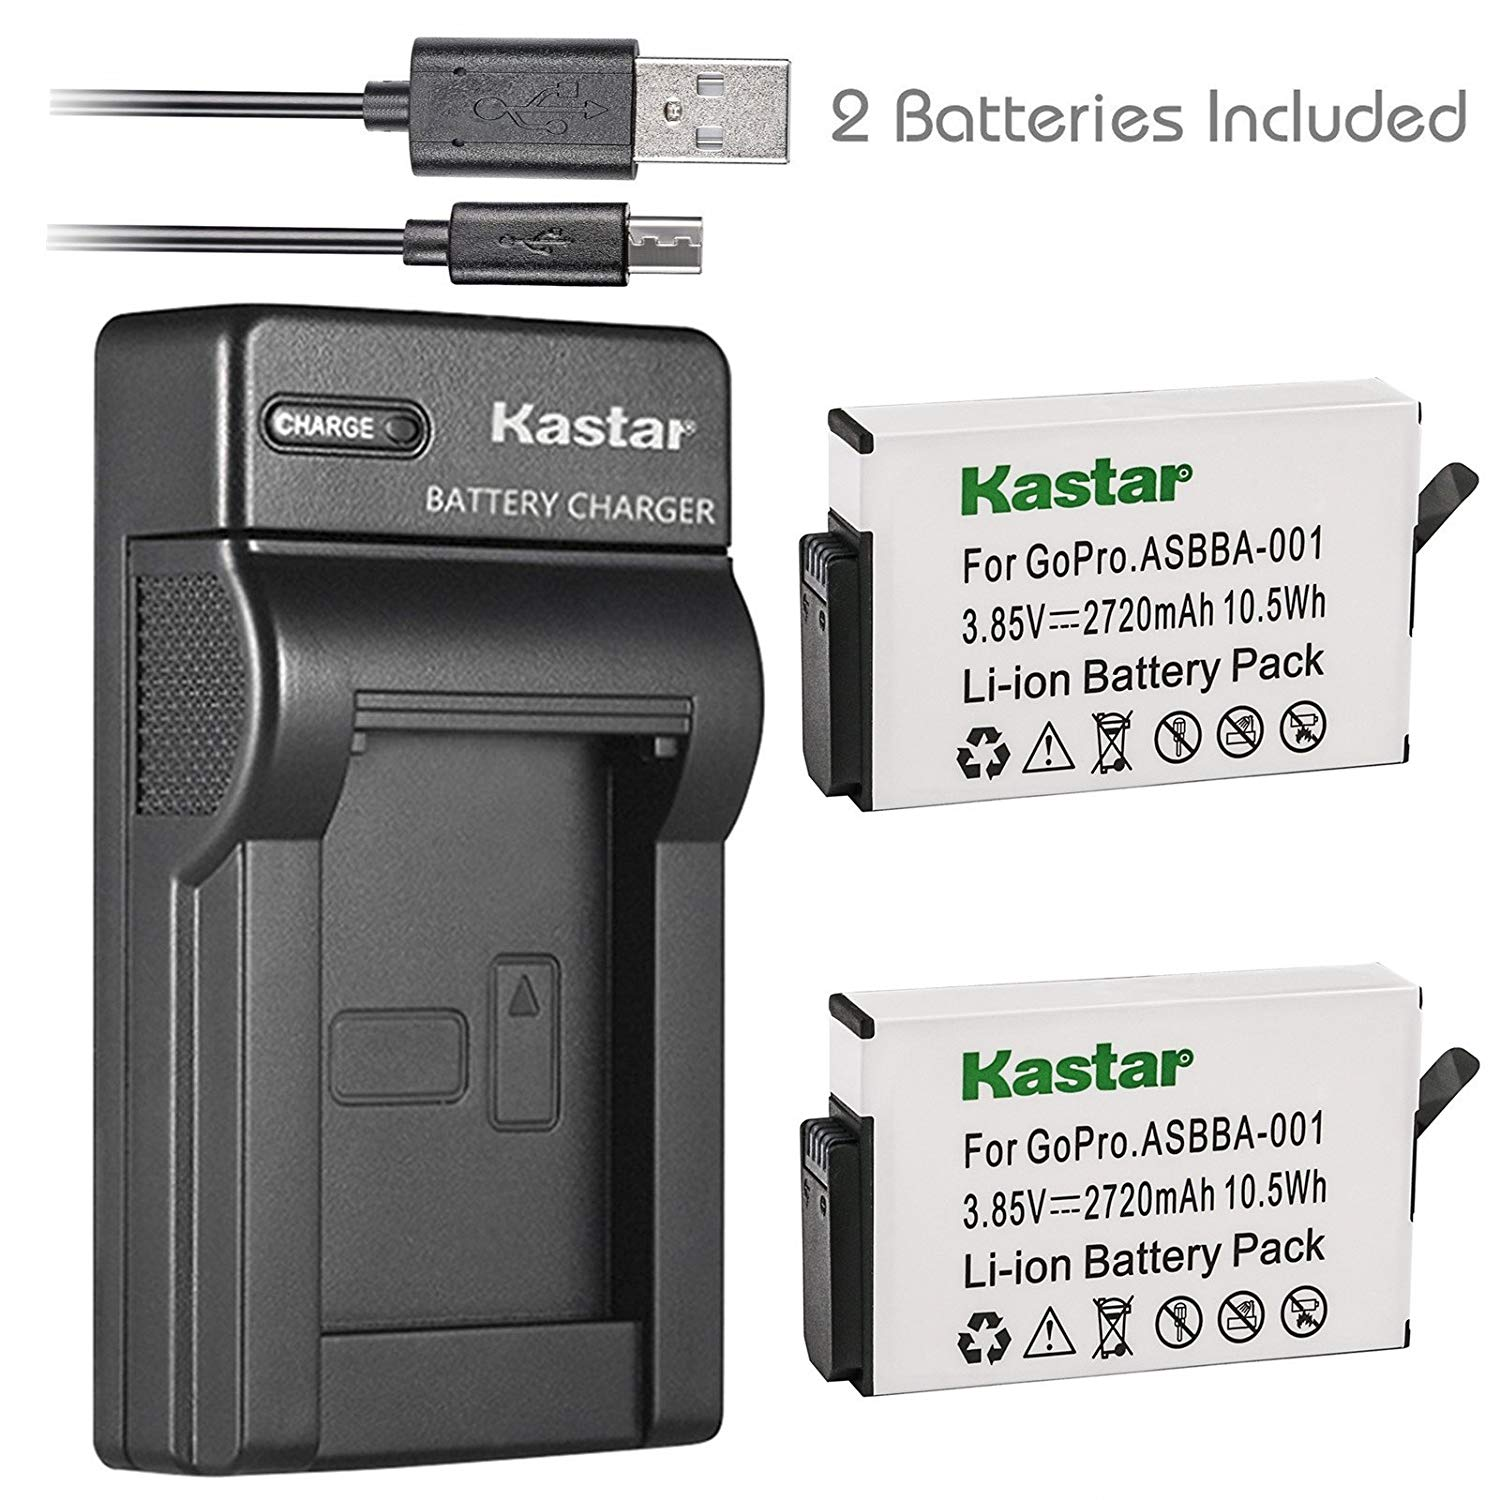 Kastar Battery 2 Pack and Slim USB Charger for GoPro ASBBA-001 Battery and Gopro Fusion 360-Degree Action Camera